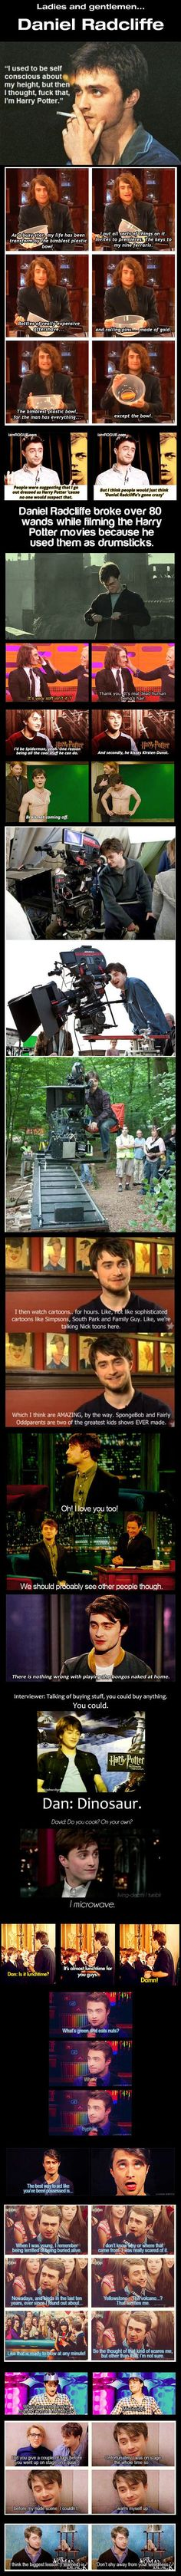 Daniel Radcliffe is like the male version of Jennifer Lawrence.